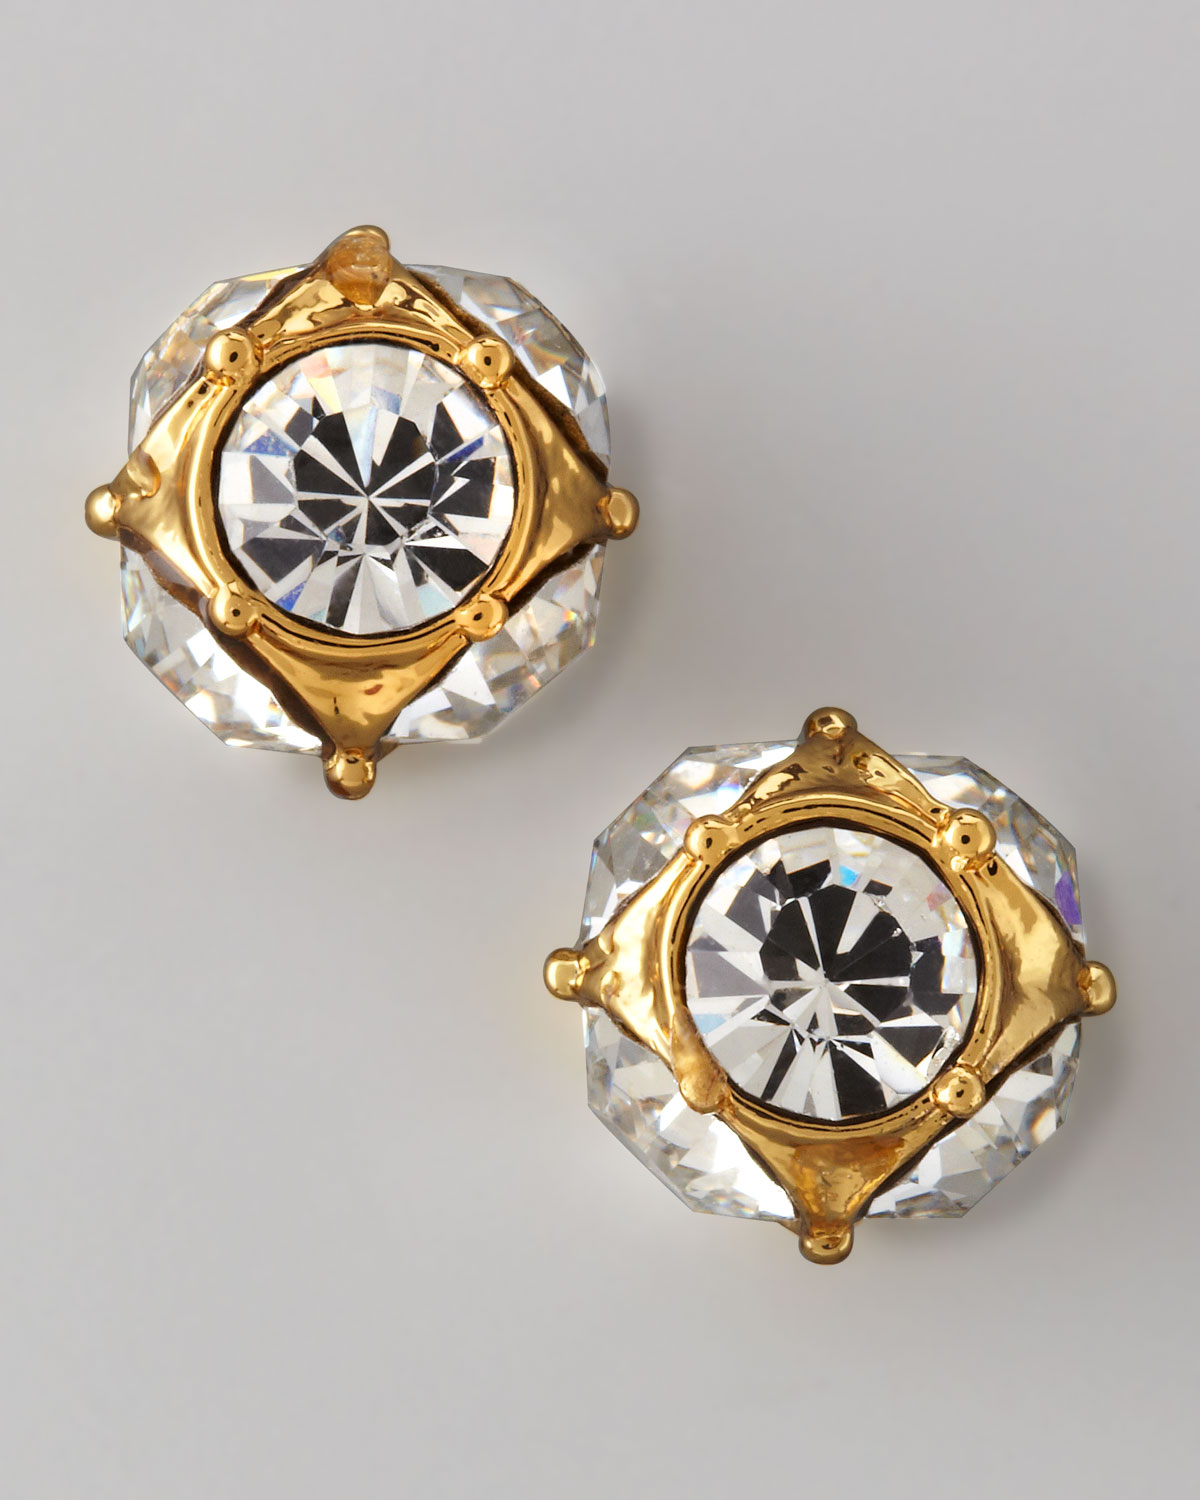 70a1e4183 kate spade new york lady marmalade rhinestone ball stud earrings ...